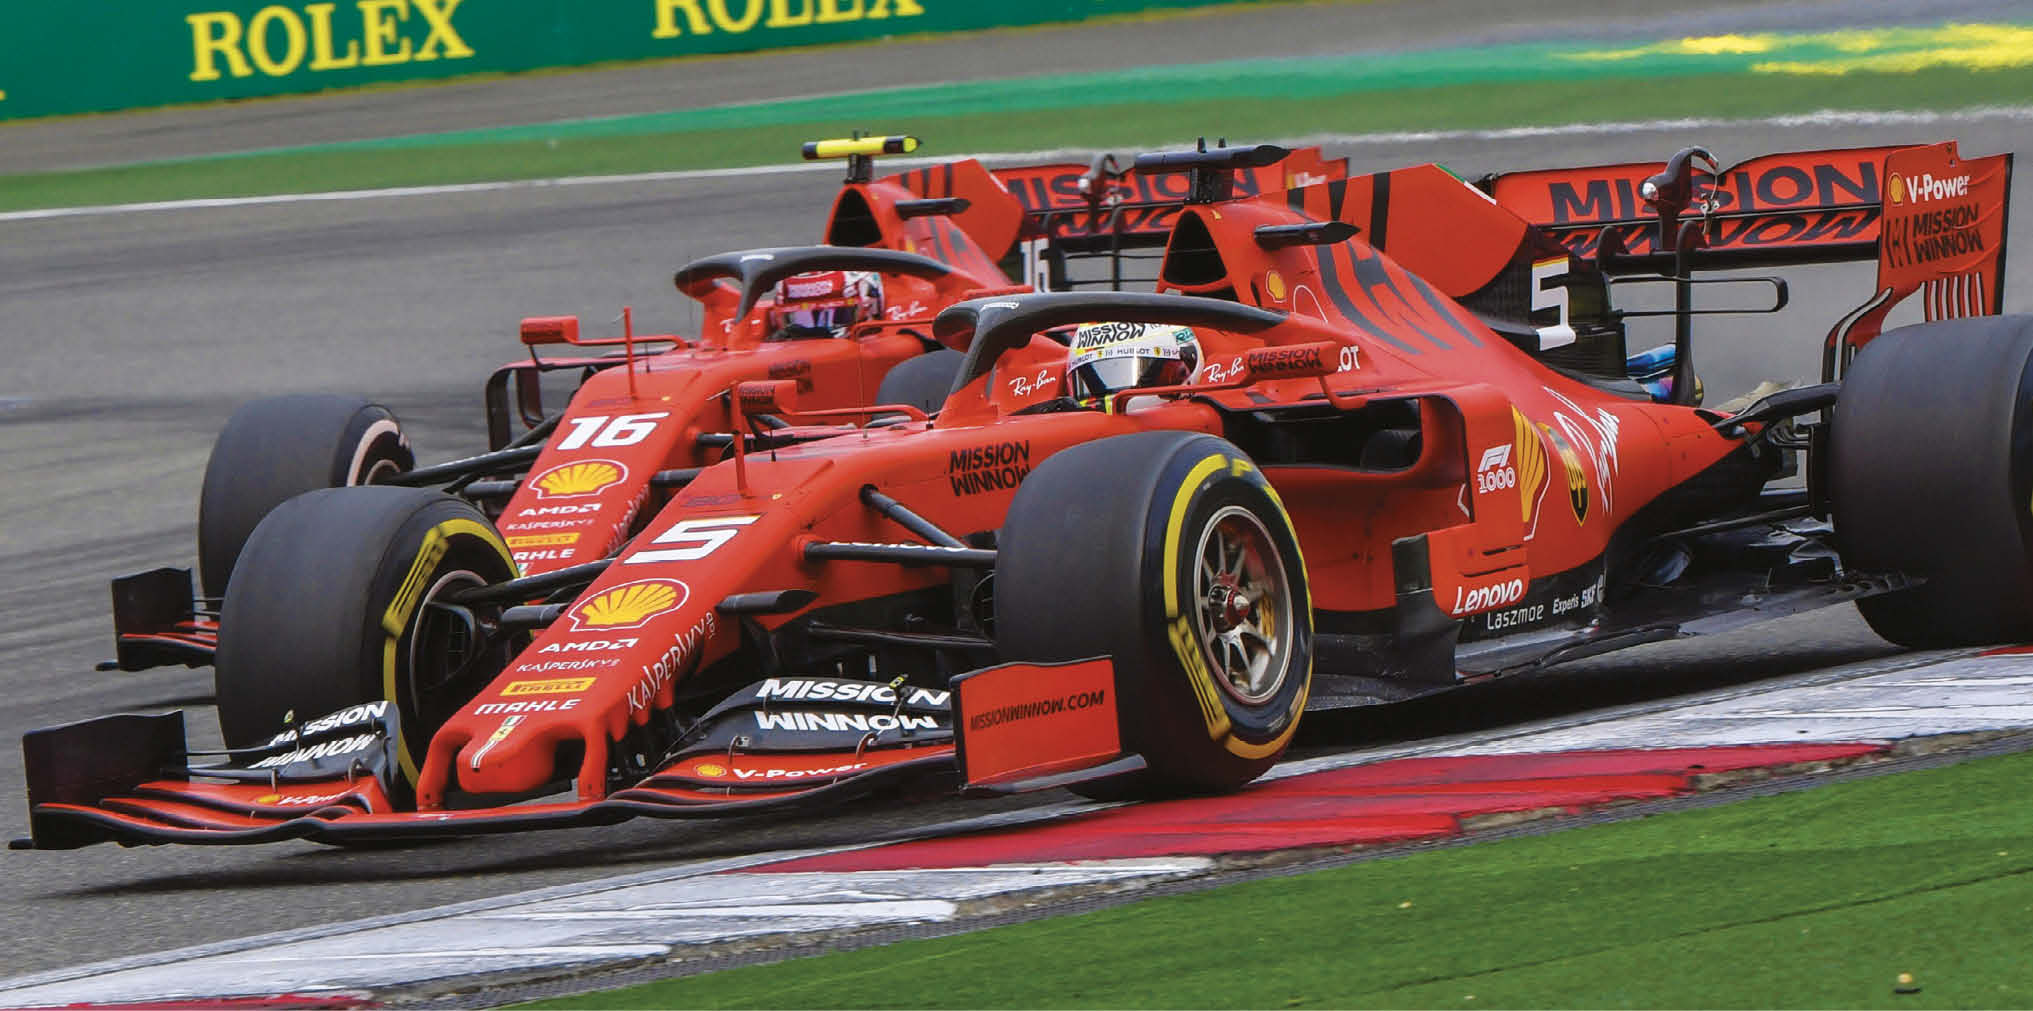 Ferrari has a tough task to juggle the relationship between star driver Vettel and newcomer Leclerc